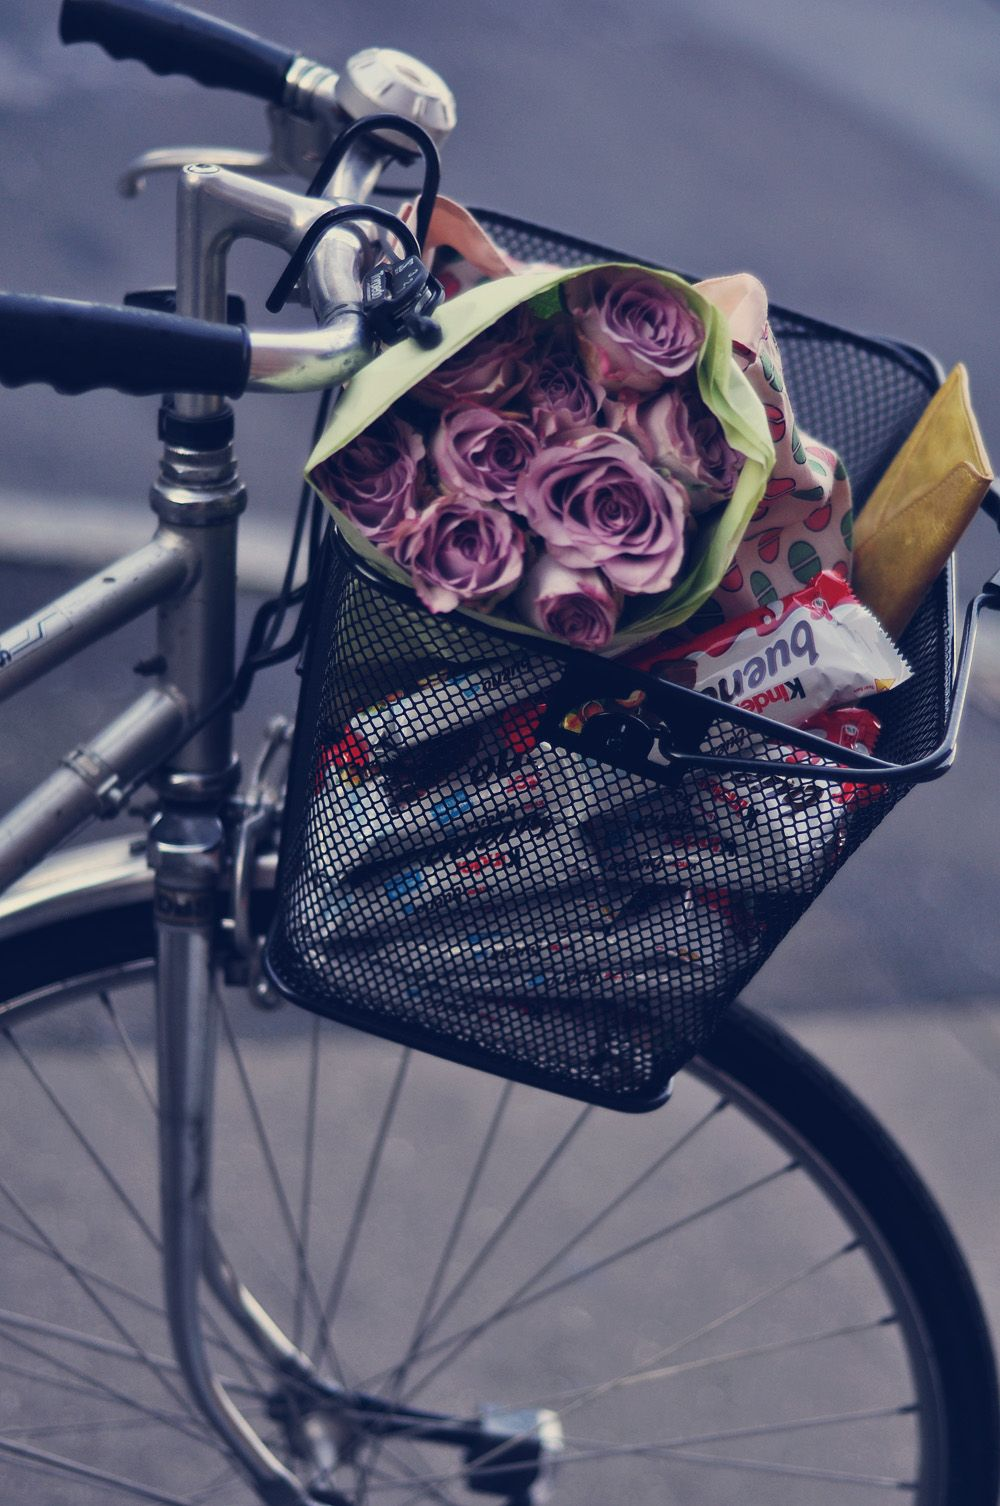 Flowers and chocolate! My love, Choco, Baby strollers